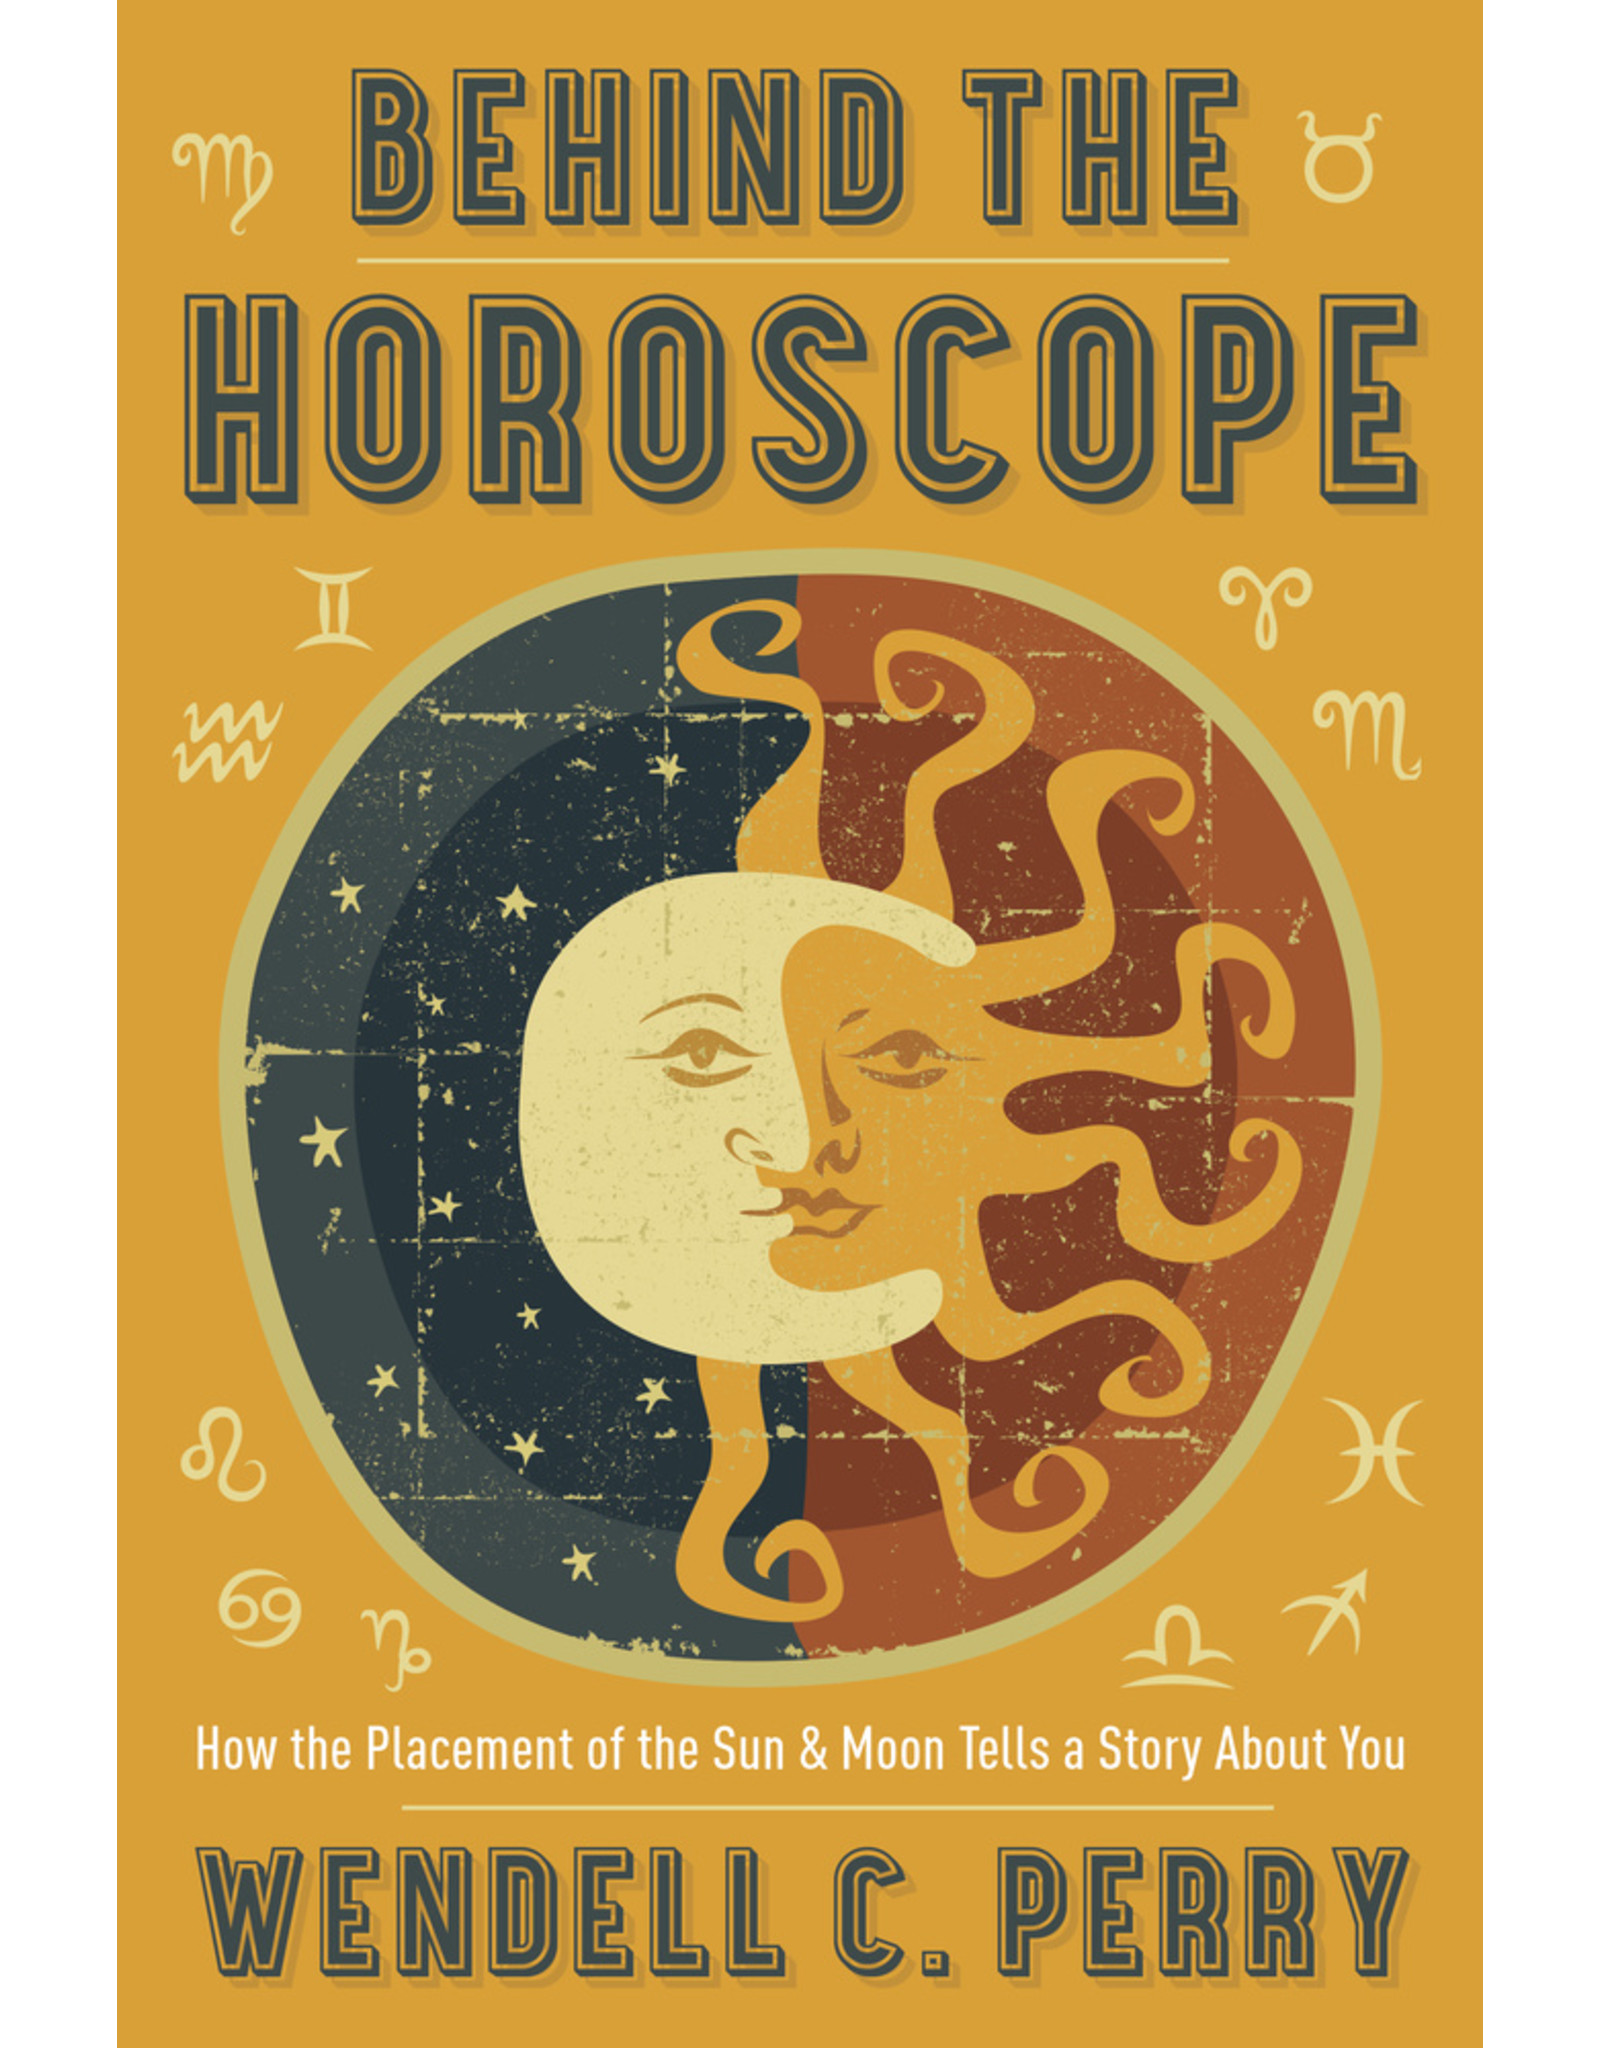 Behind the Horoscope